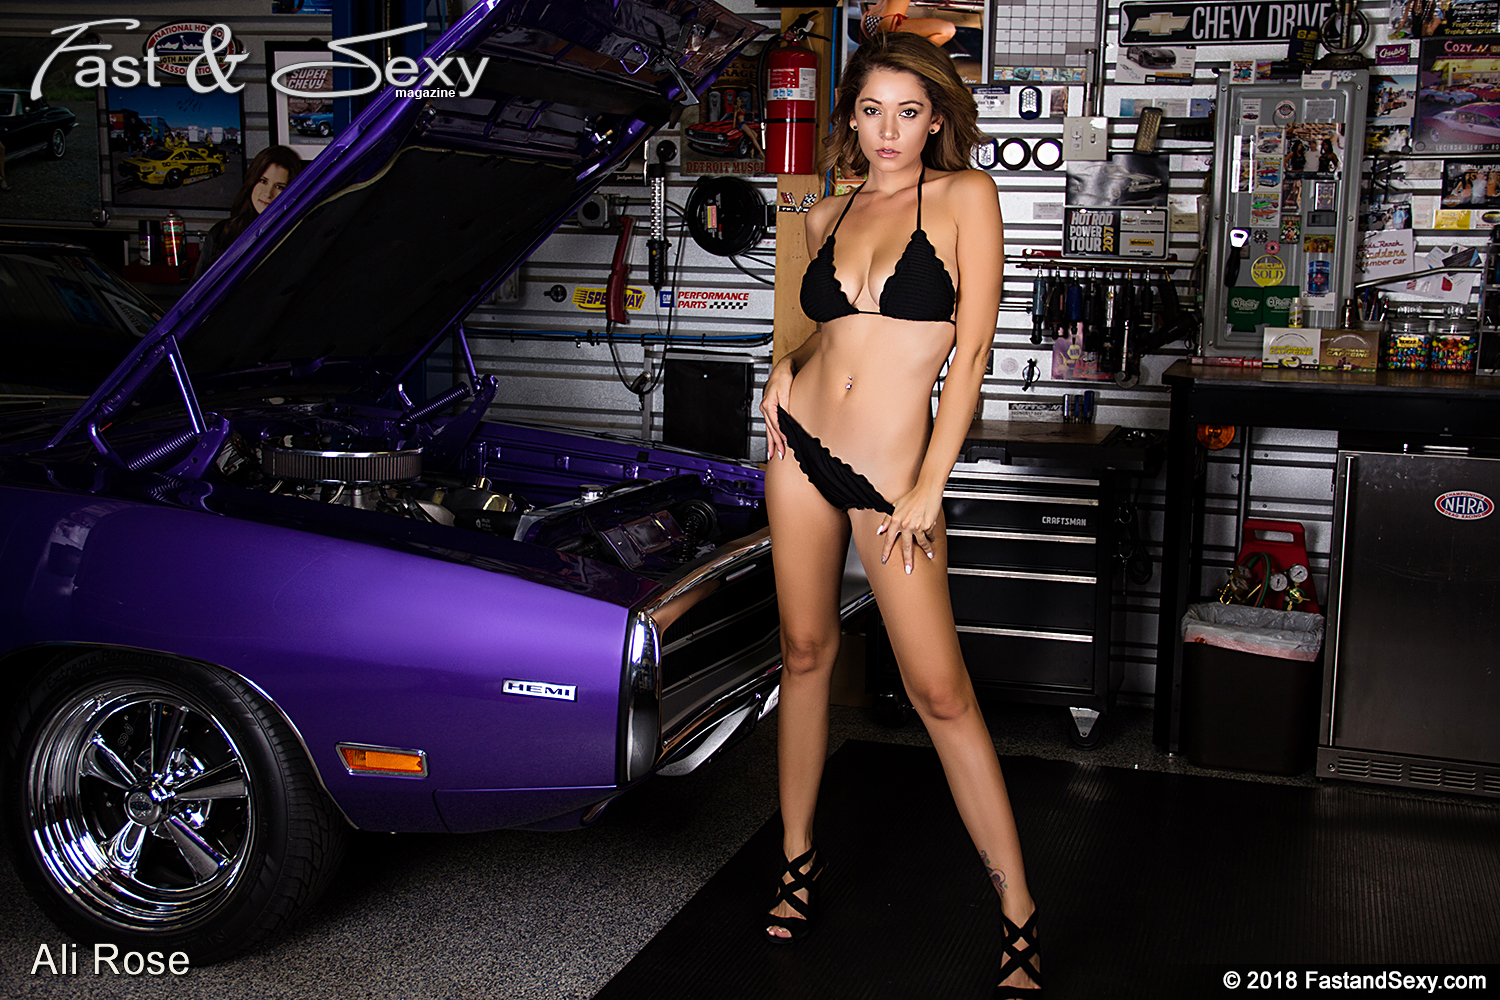 A charger Nude model in